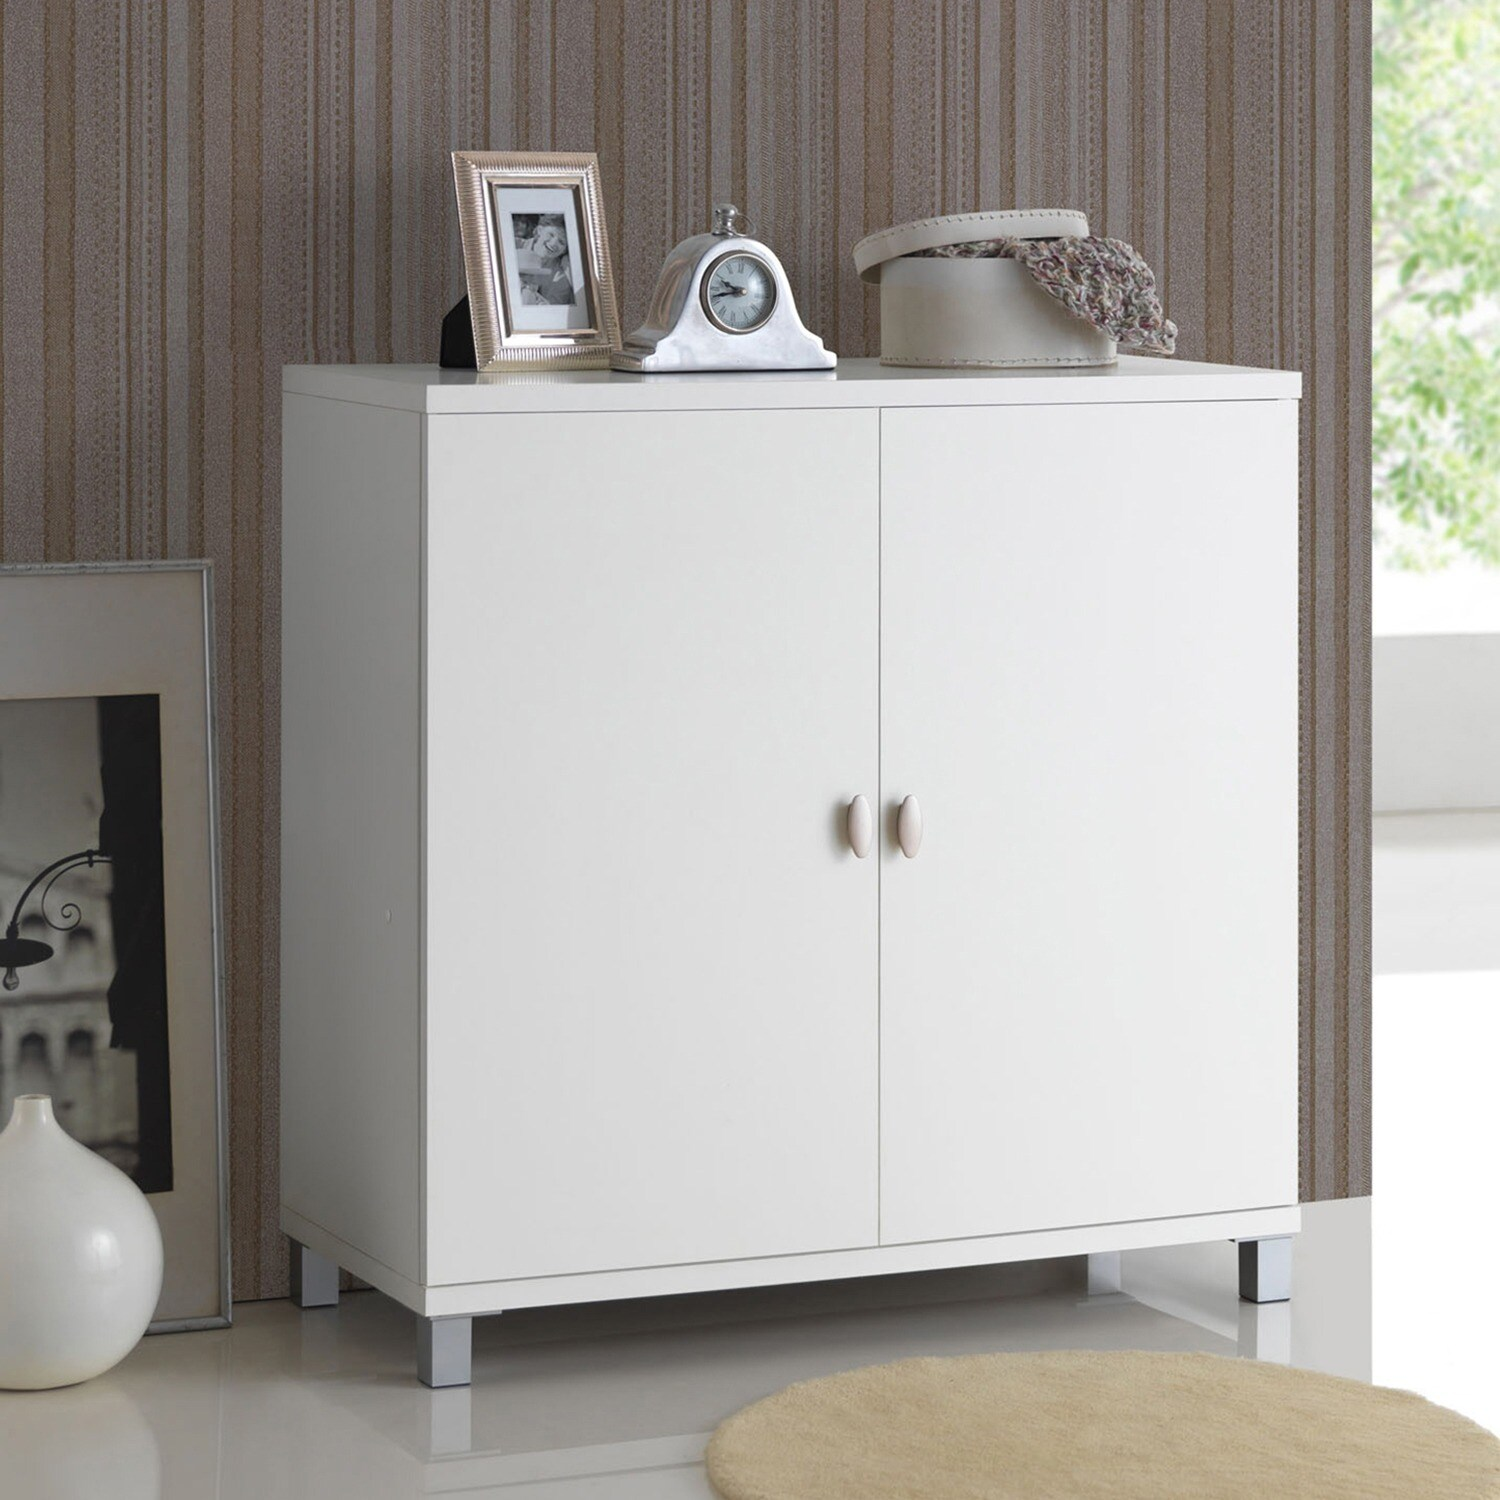 Exceptionnel Shop Baxton Studio Marcy Contemporary White Wood Storage Sideboard Cabinet    Free Shipping Today   Overstock.com   10603530